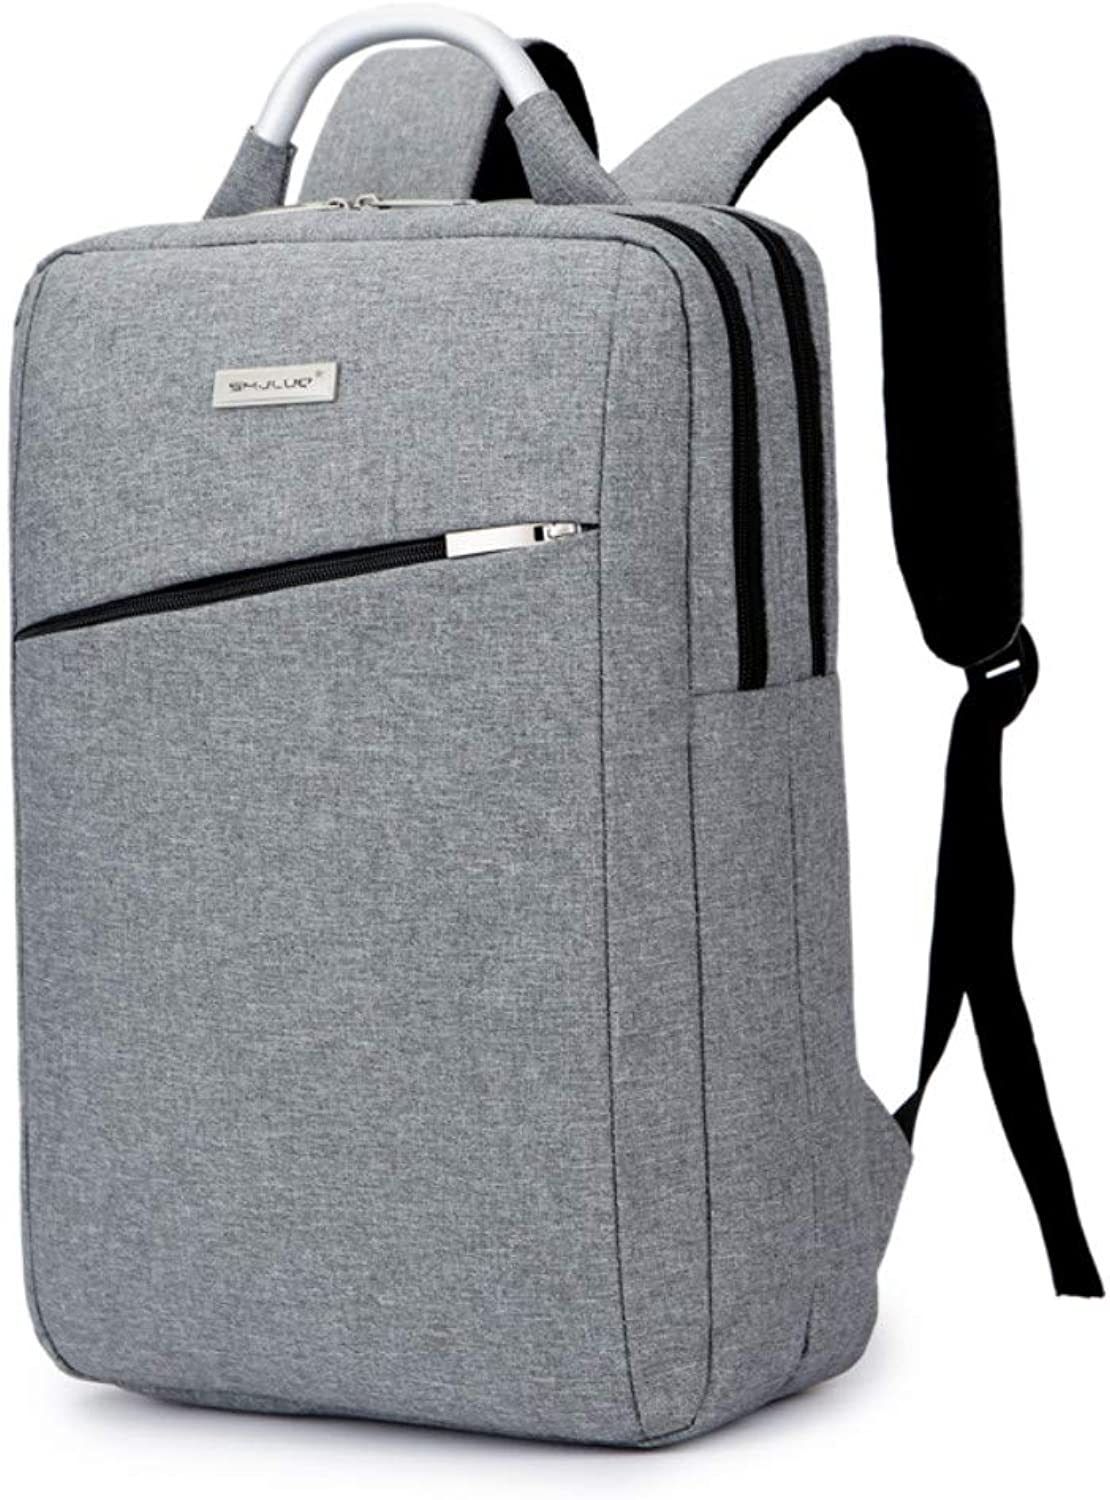 Laptop BackpackBusiness Computer Bag Men and Women Business Backpack Laptop Bag 14 Inch 15.6 Inch Backpack Casual Fashion Bag